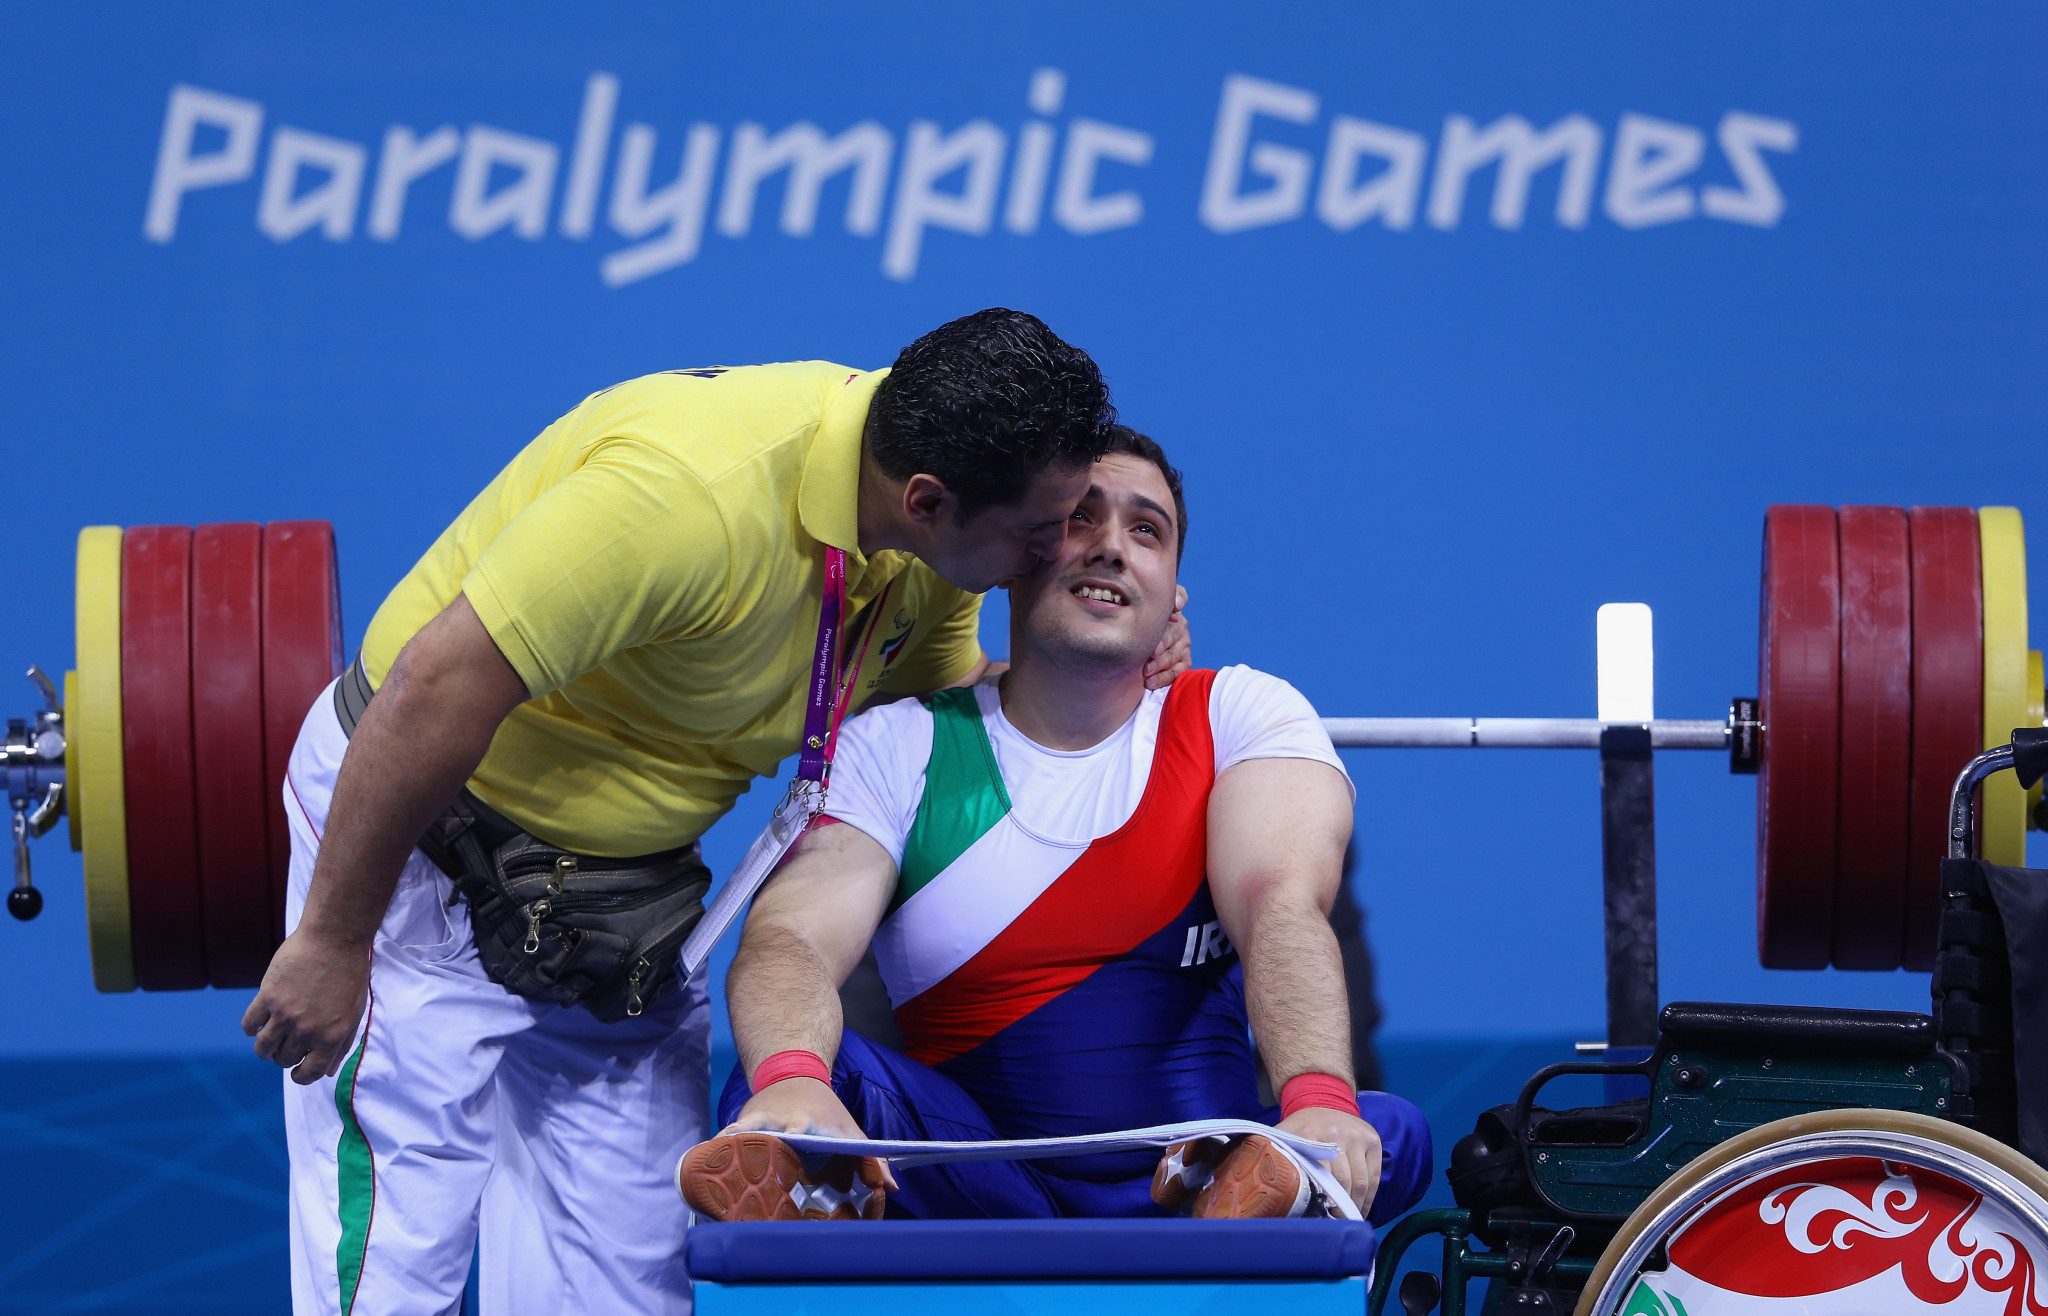 Turkey challenges Thai hosts for lead in World Para Powerlifting World Cup as Iran's Rostami sets world record